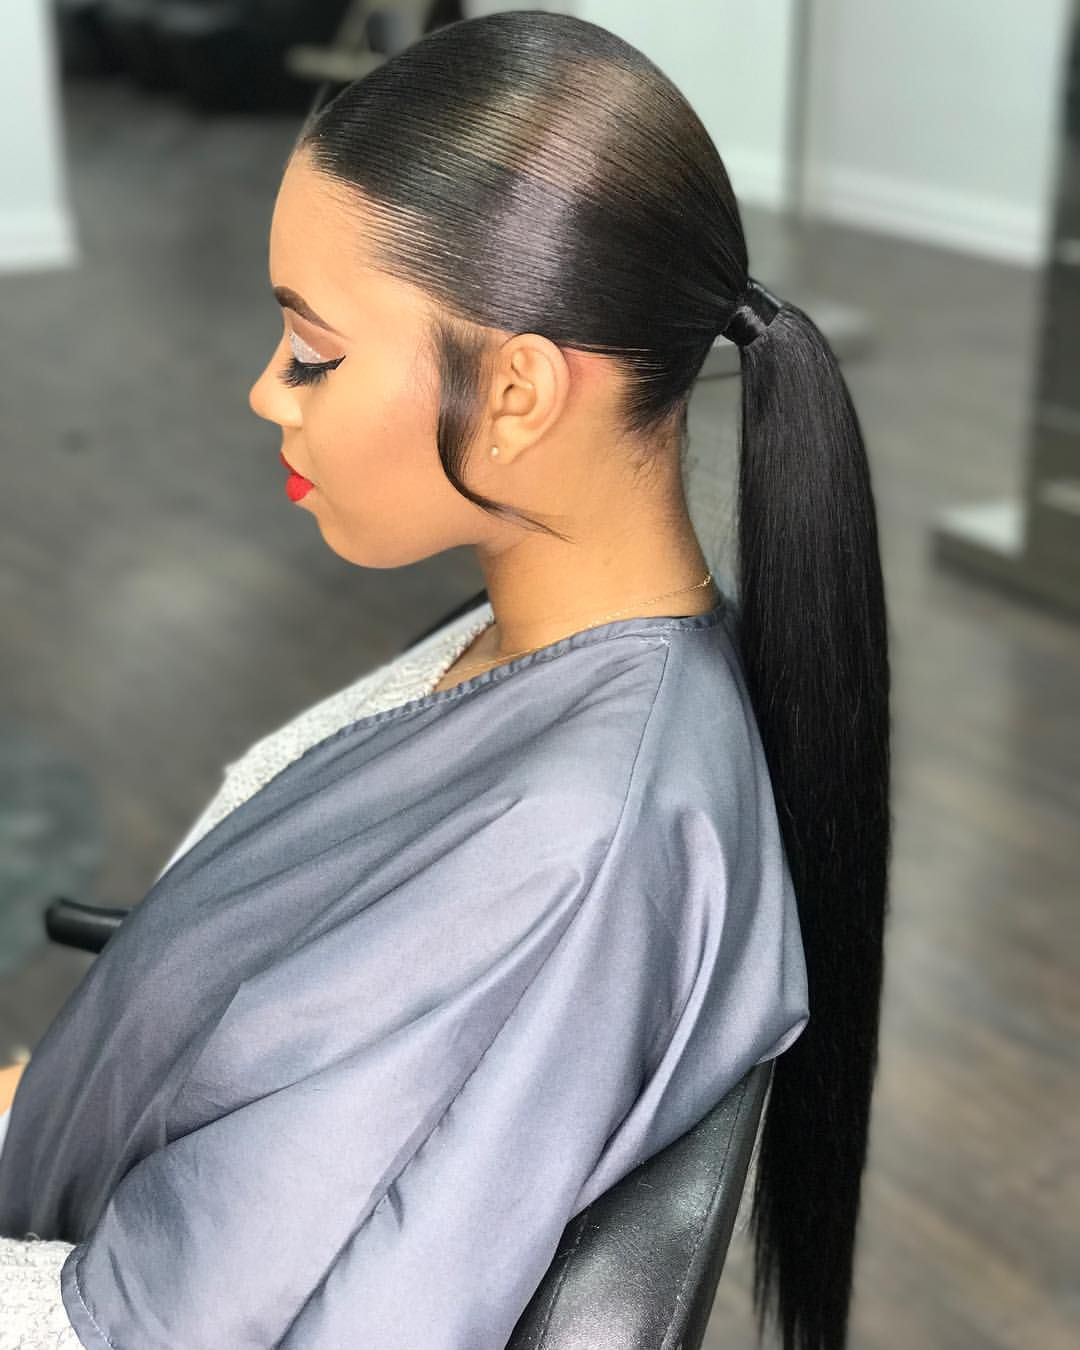 Book Sleek Ponytail No Braids Sleek Ponytail Hairstyles Sleek